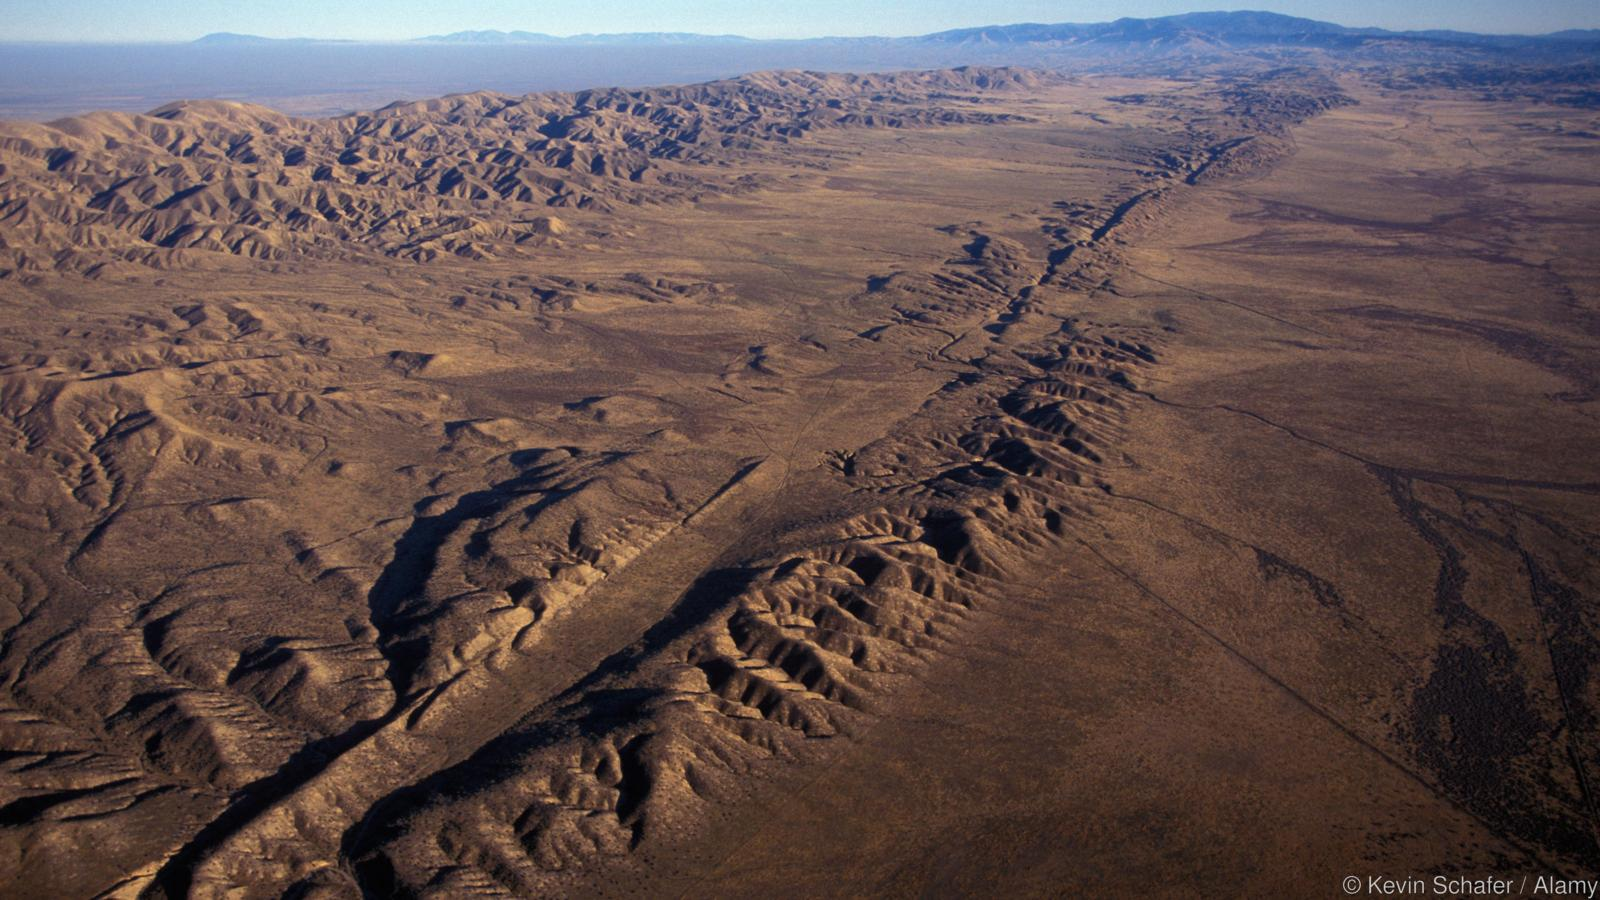 SAN ANDREAS FAULT, Aerial of fault in Carrizo Plain, Central California. Image shot 2004. Exact date unknown.